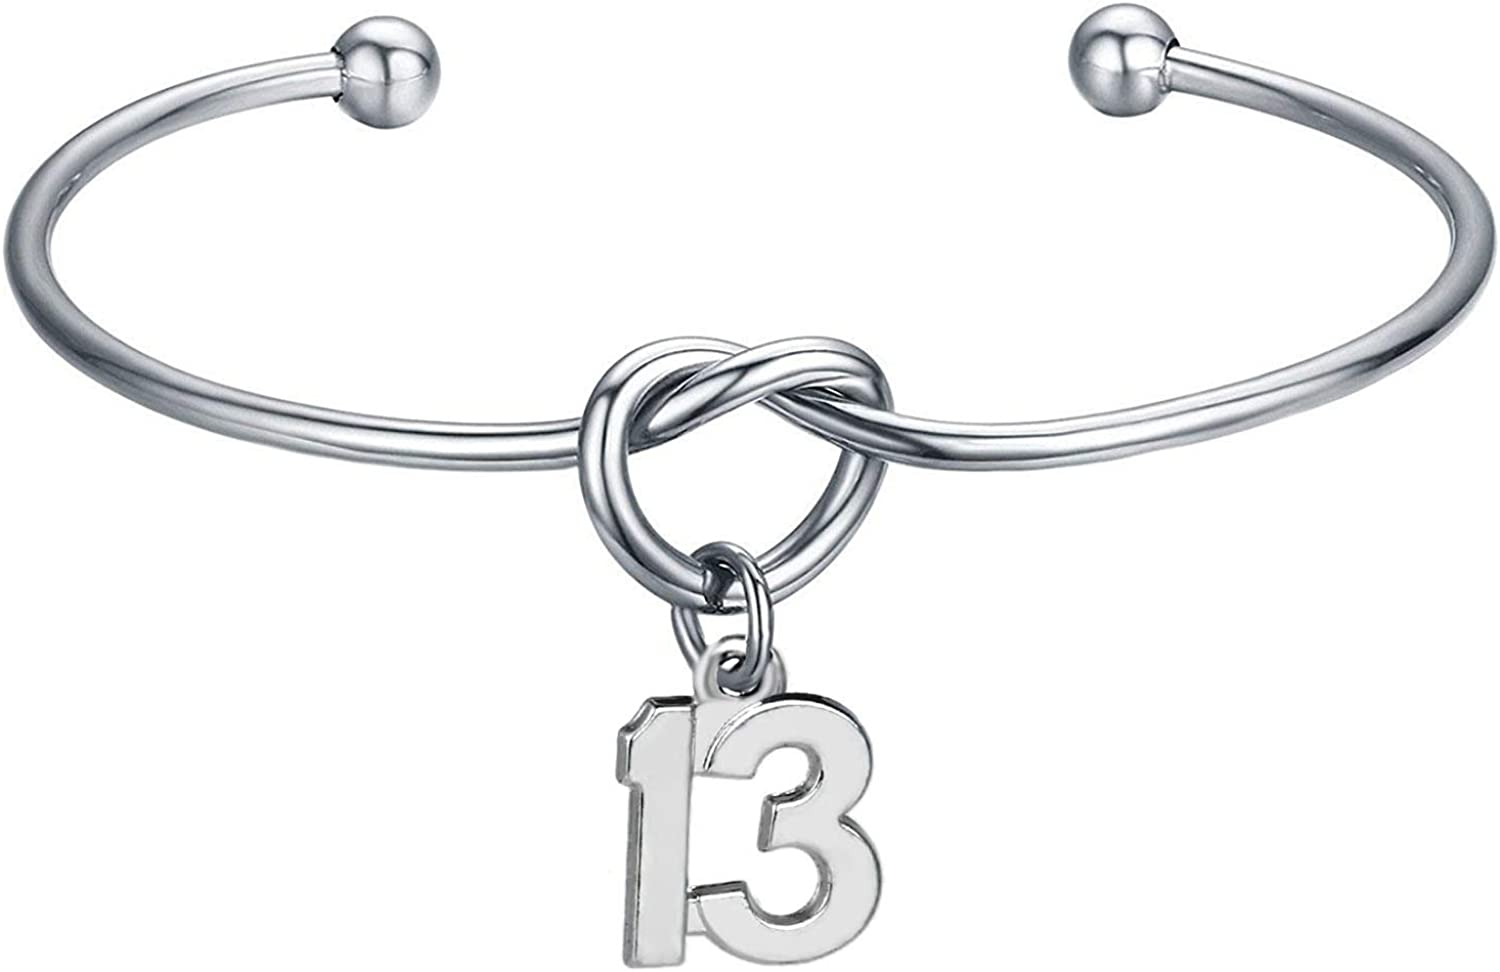 13th bracelet CHOROY 13th Birthday Bracelet Official Teenager Bracelet Gift 13th Birthday Gift for Her